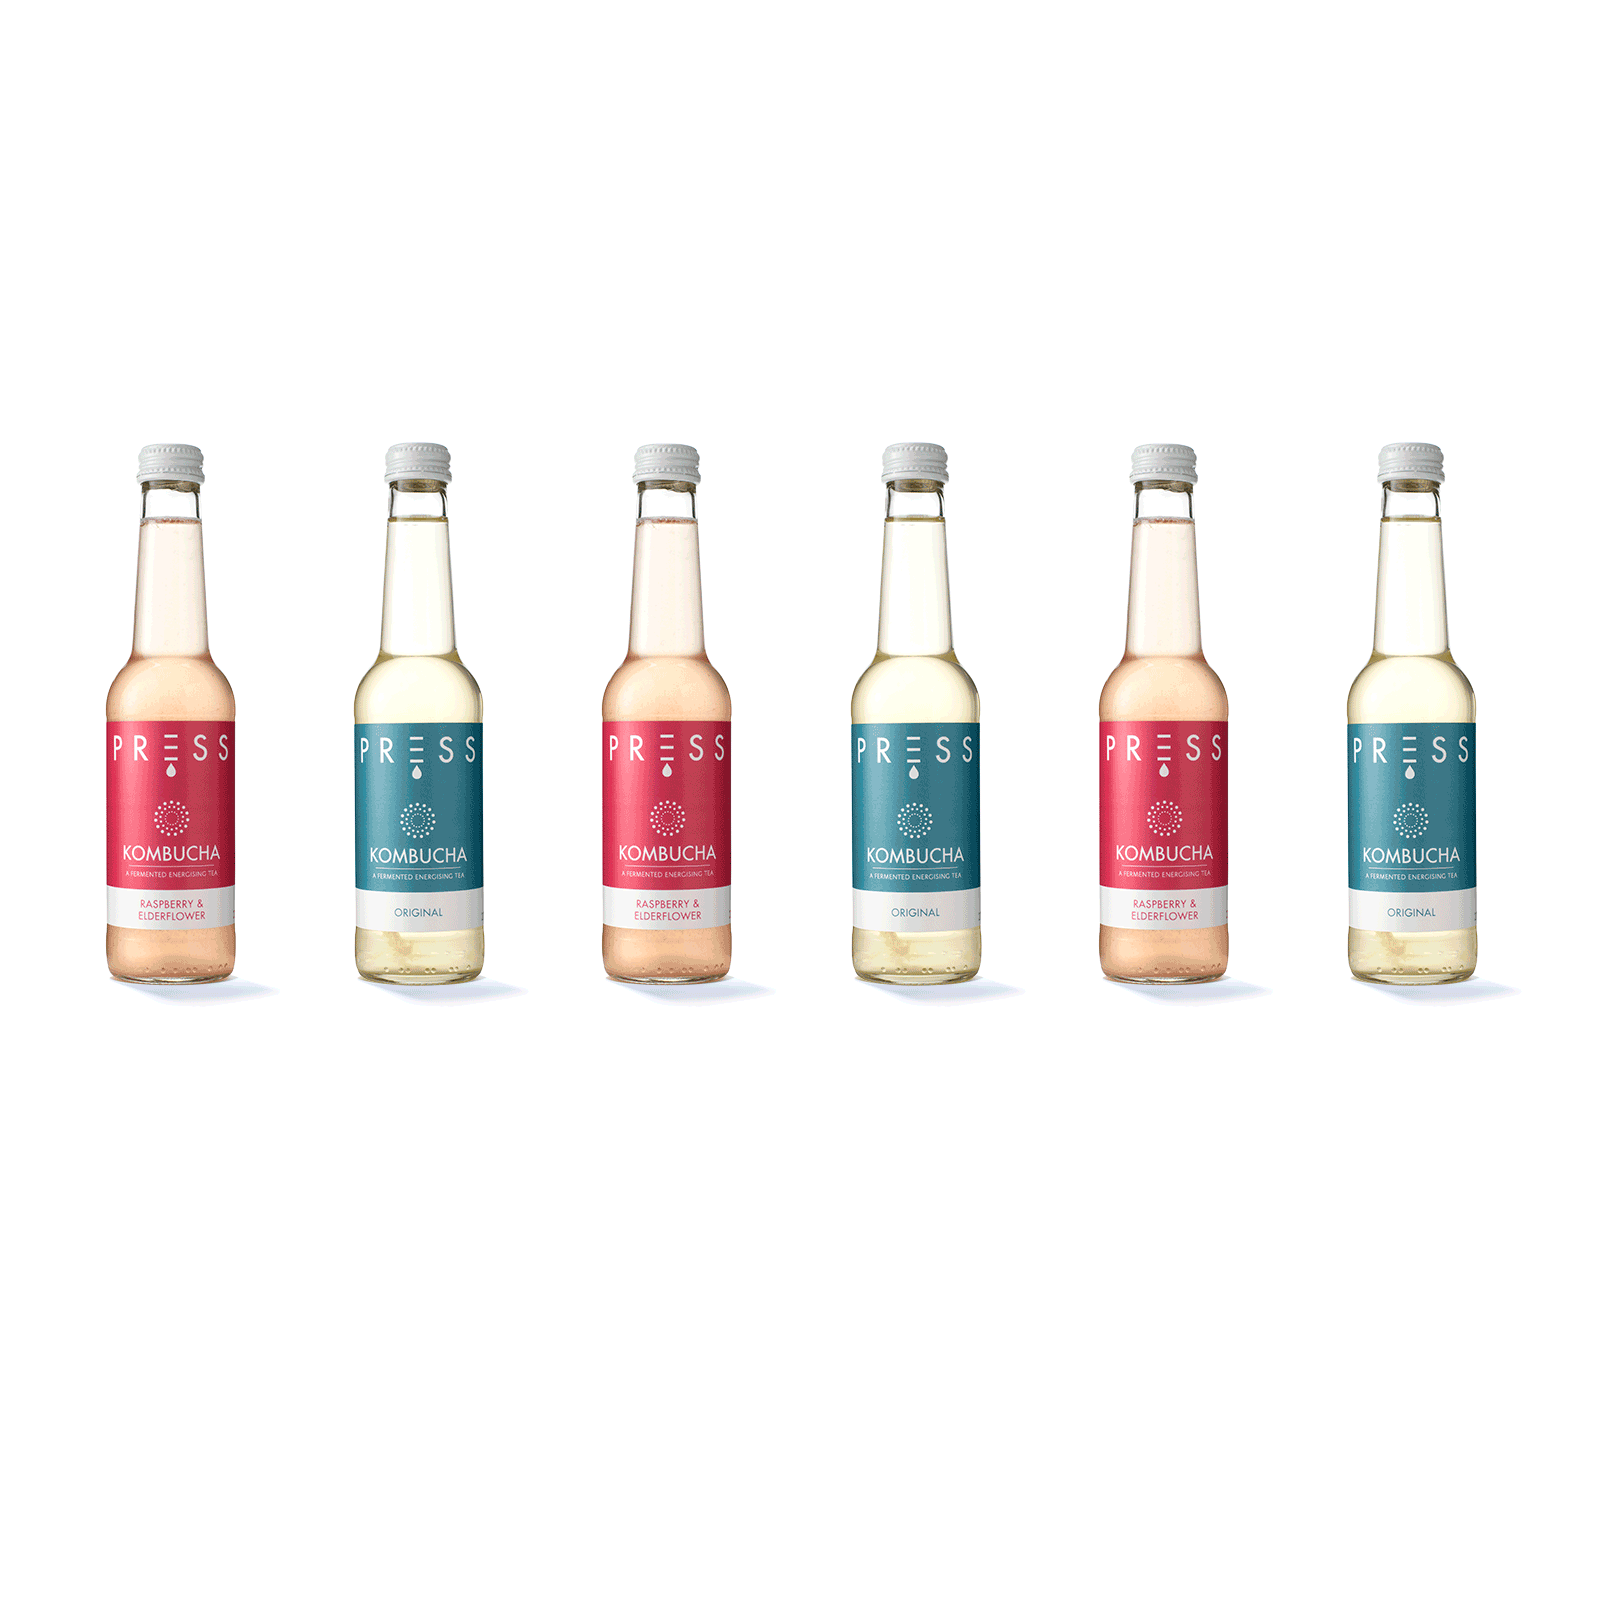 Kombucha Multipack - PRESS London